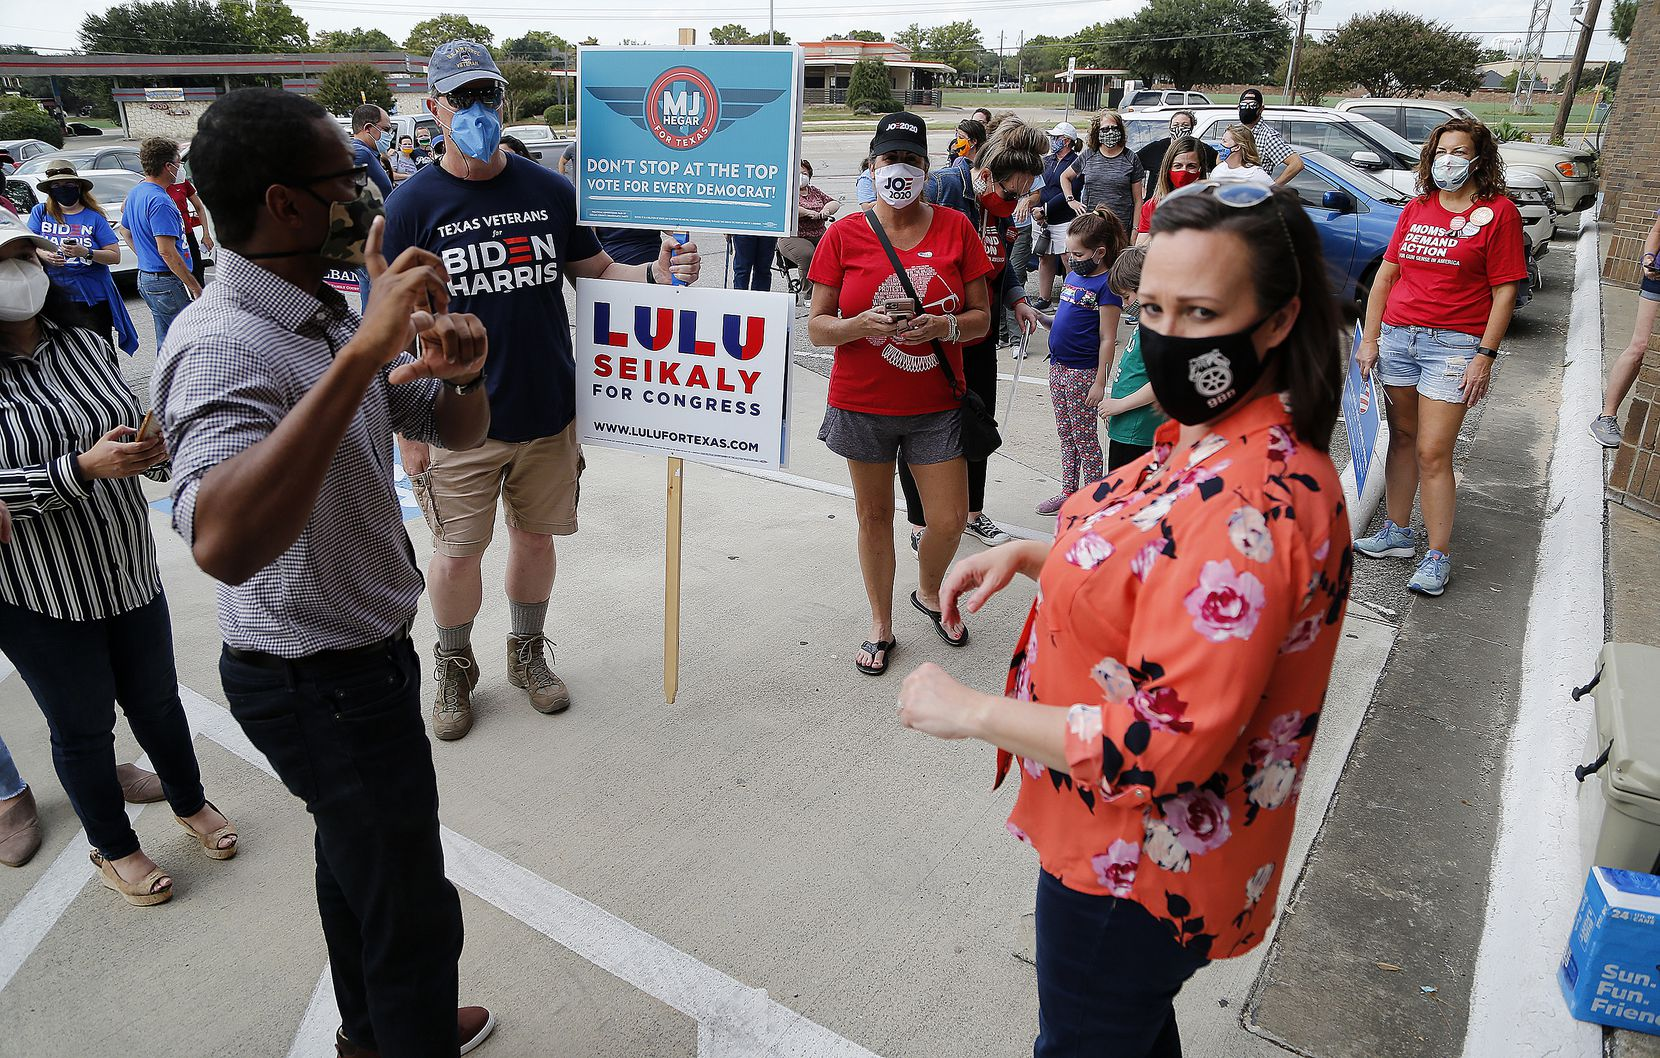 M.J. Hegar, democratic candidate for U.S. Senate, meets with supporters at the Collin County Democratic Party Office in Plano before a door knocking campaign on Sunday, October 18, 2020. (Stewart F. House/Special Contributor)